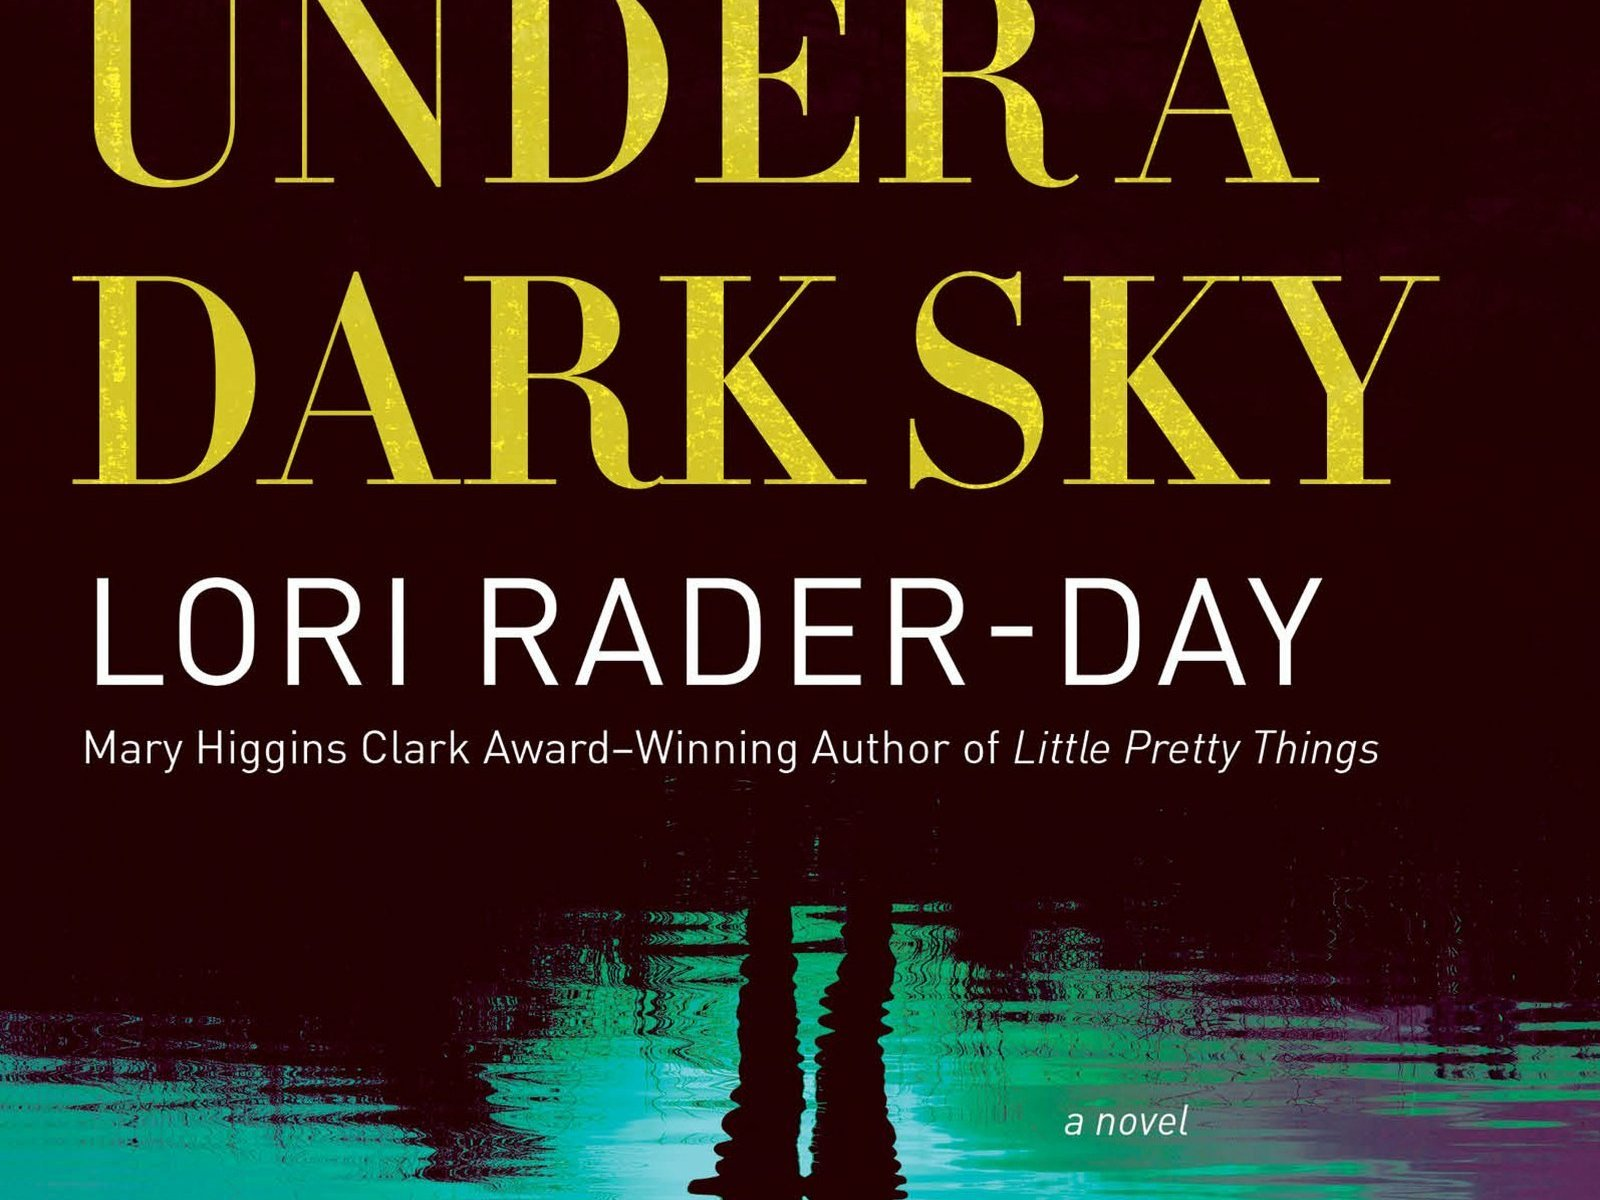 Umder A Dark Sky By Lori Rader-Day